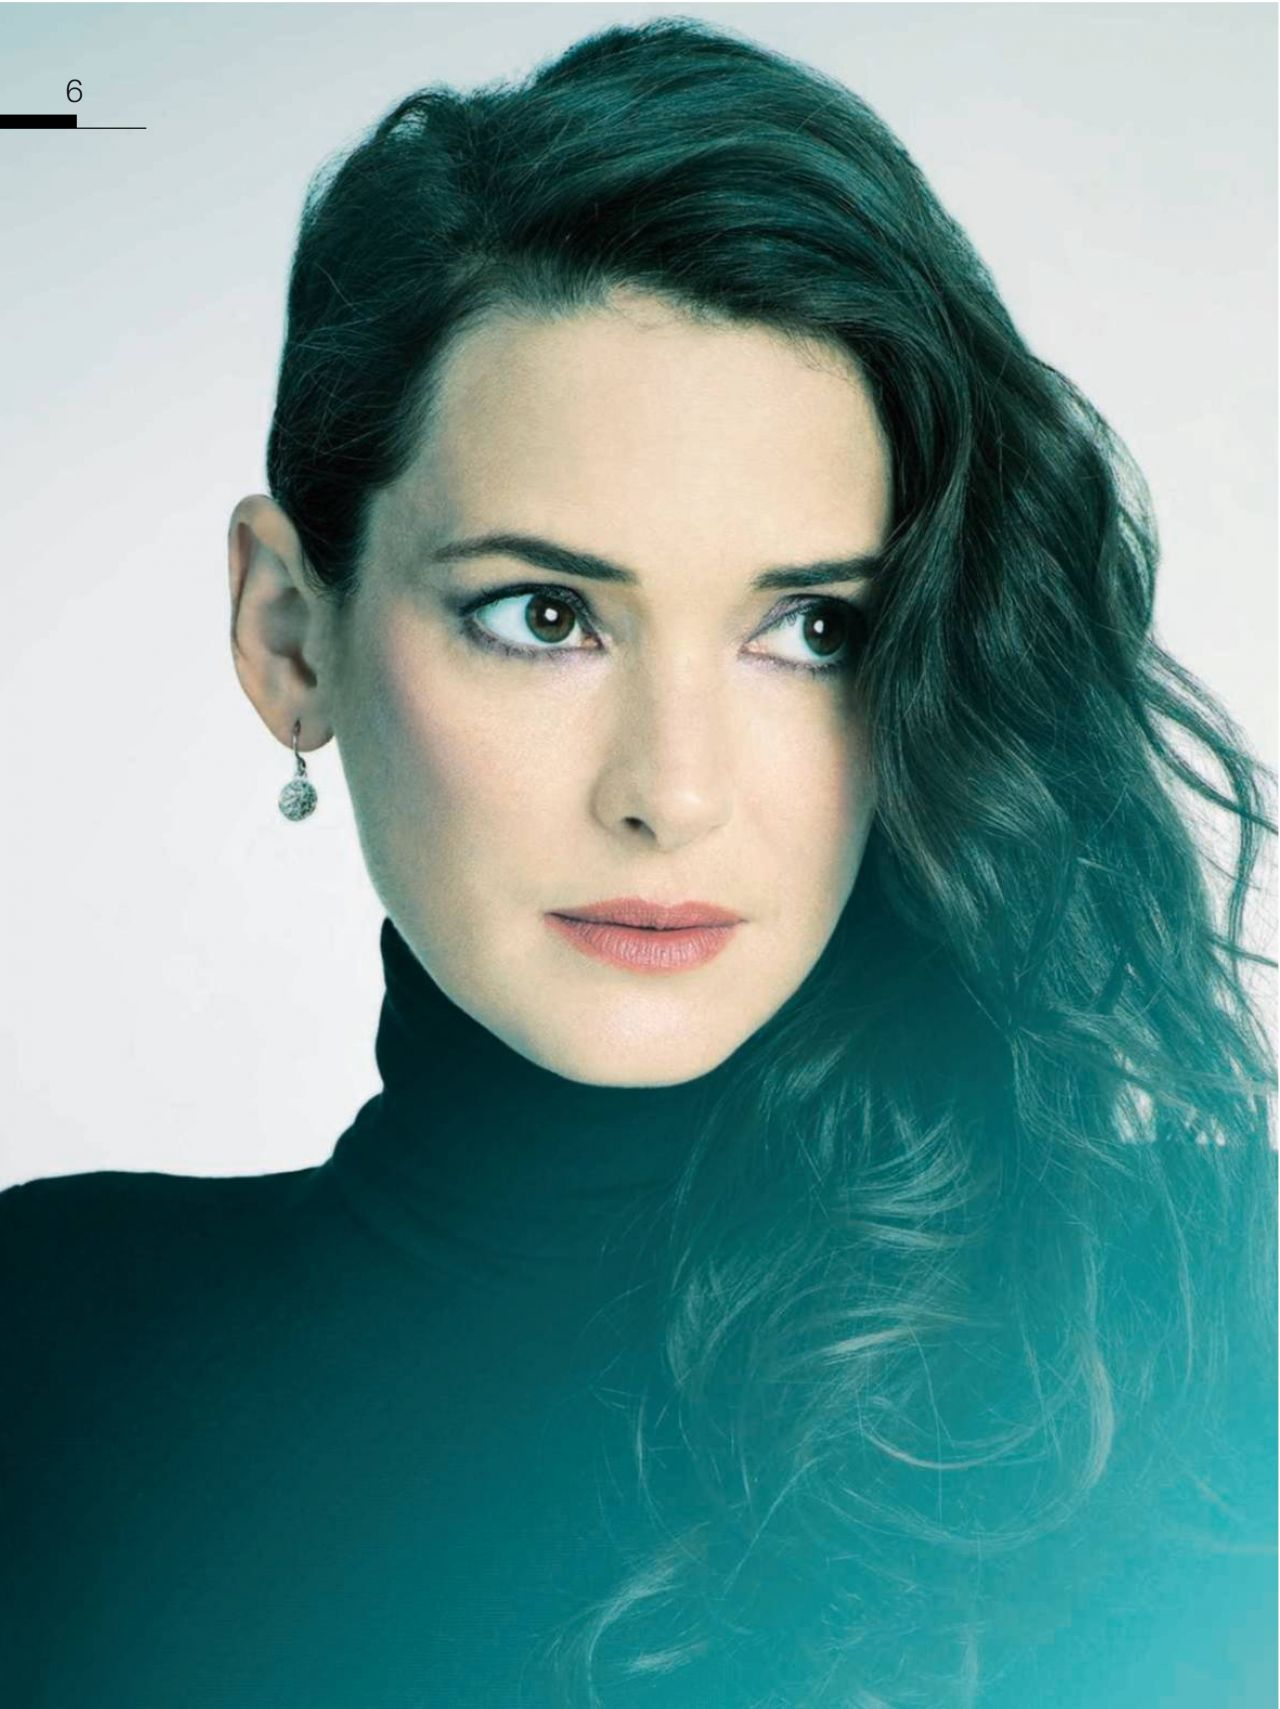 winona ryder - photo #39